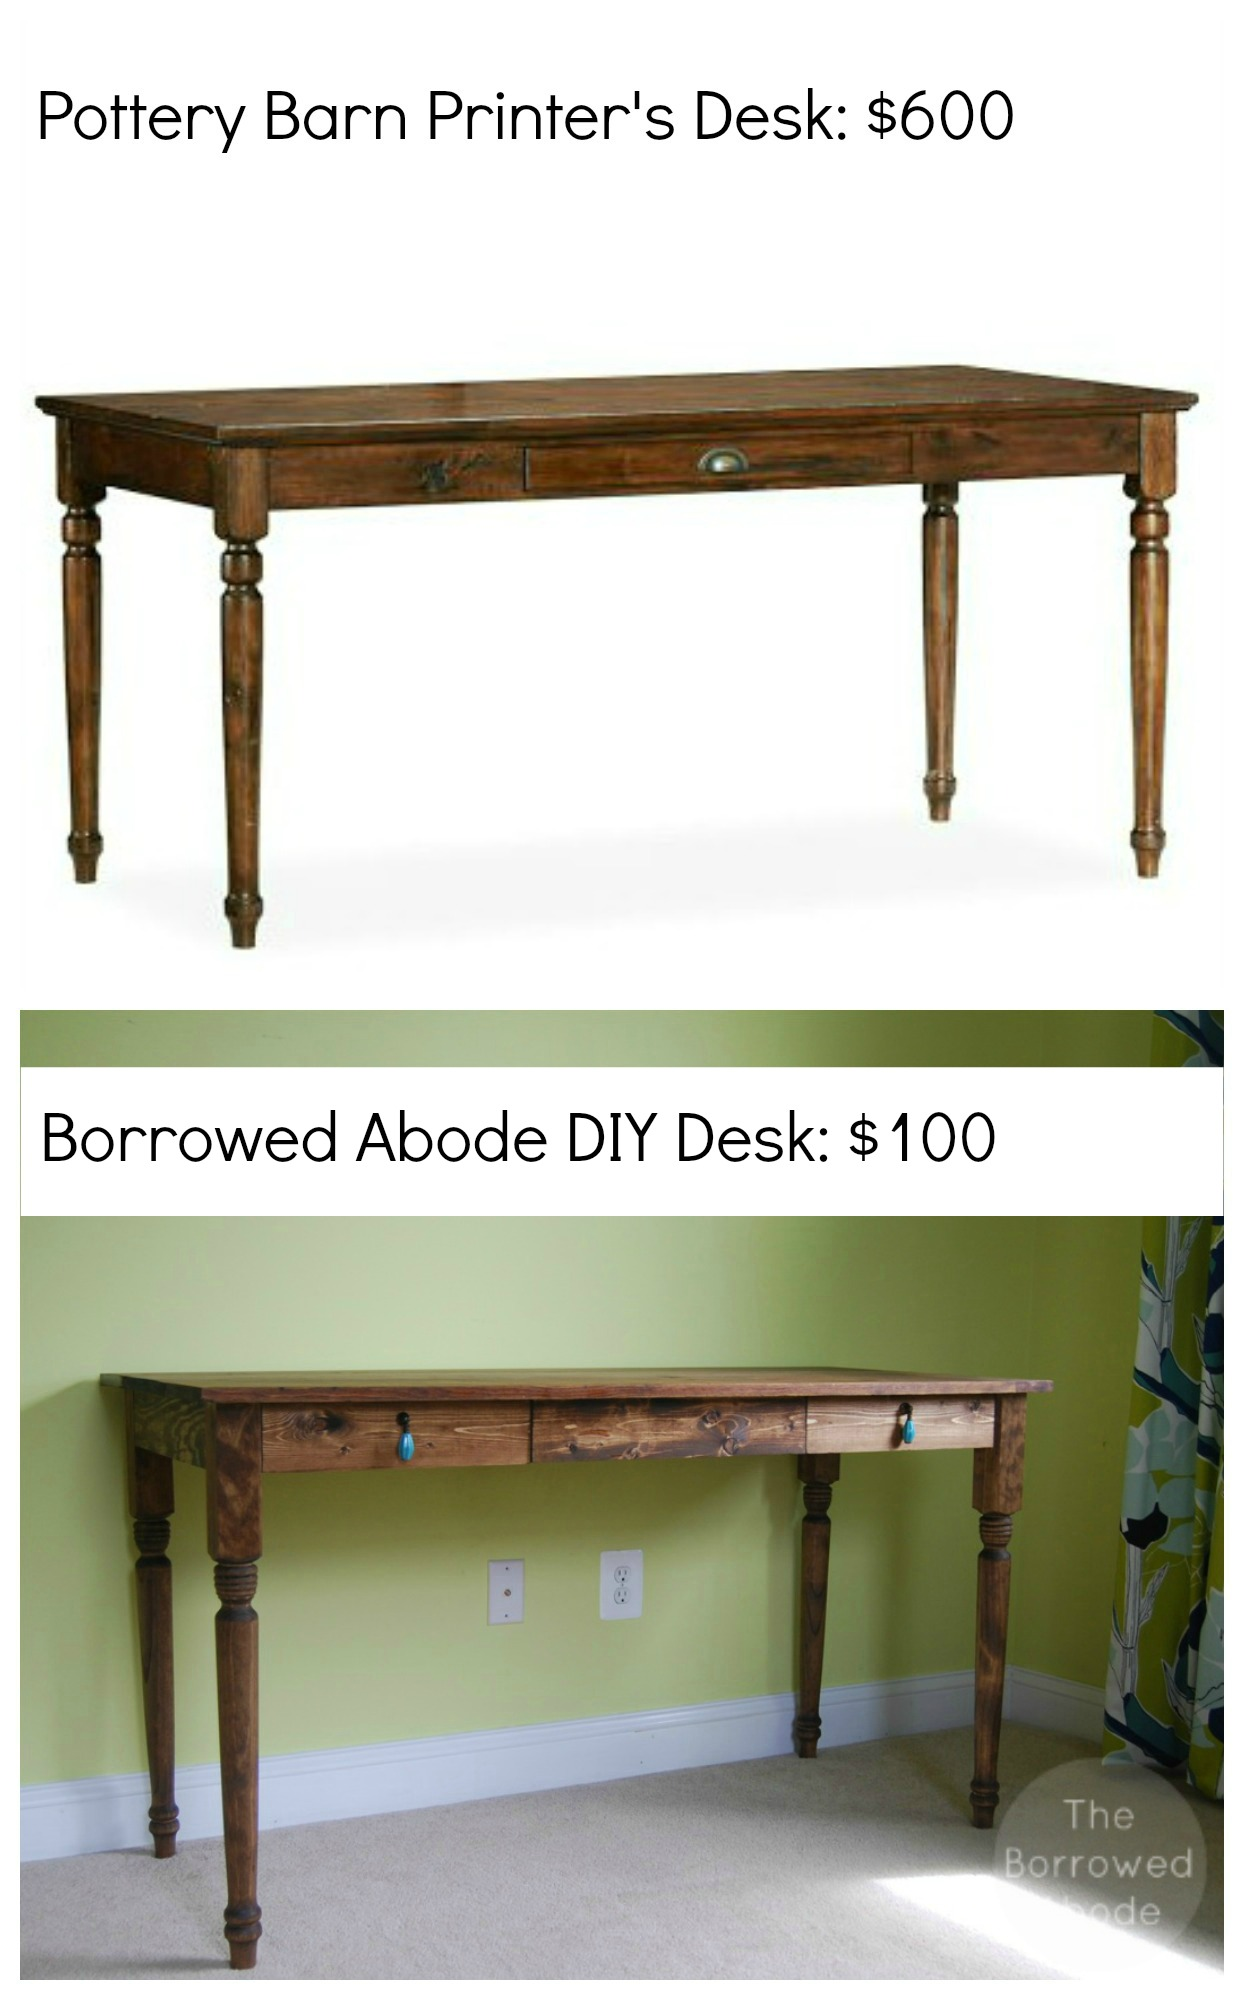 DIY Pottery Barn Desk | The Borrowed Abode